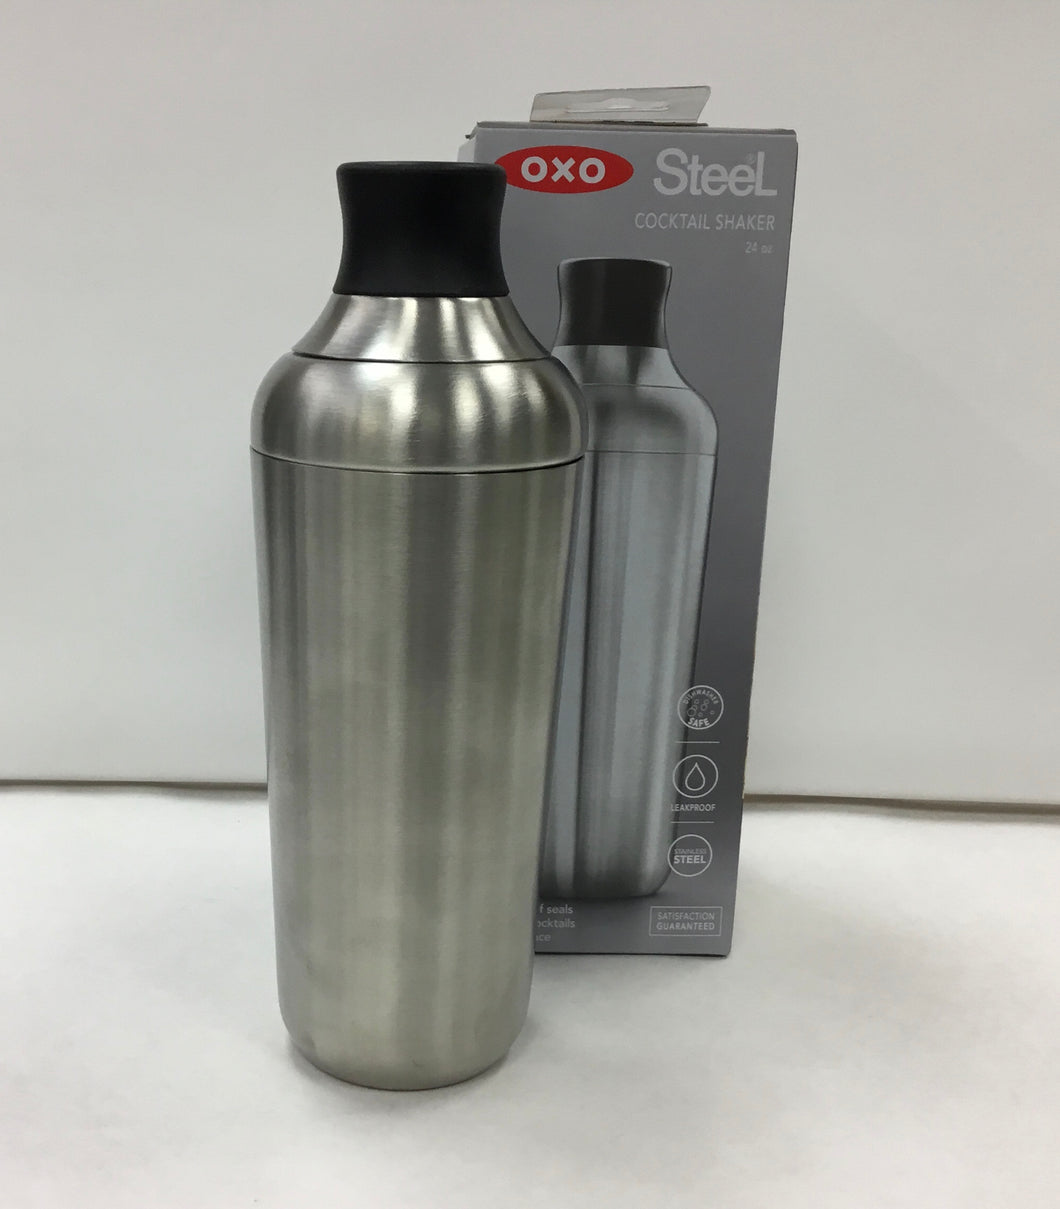 Cocktail Shaker, OXO